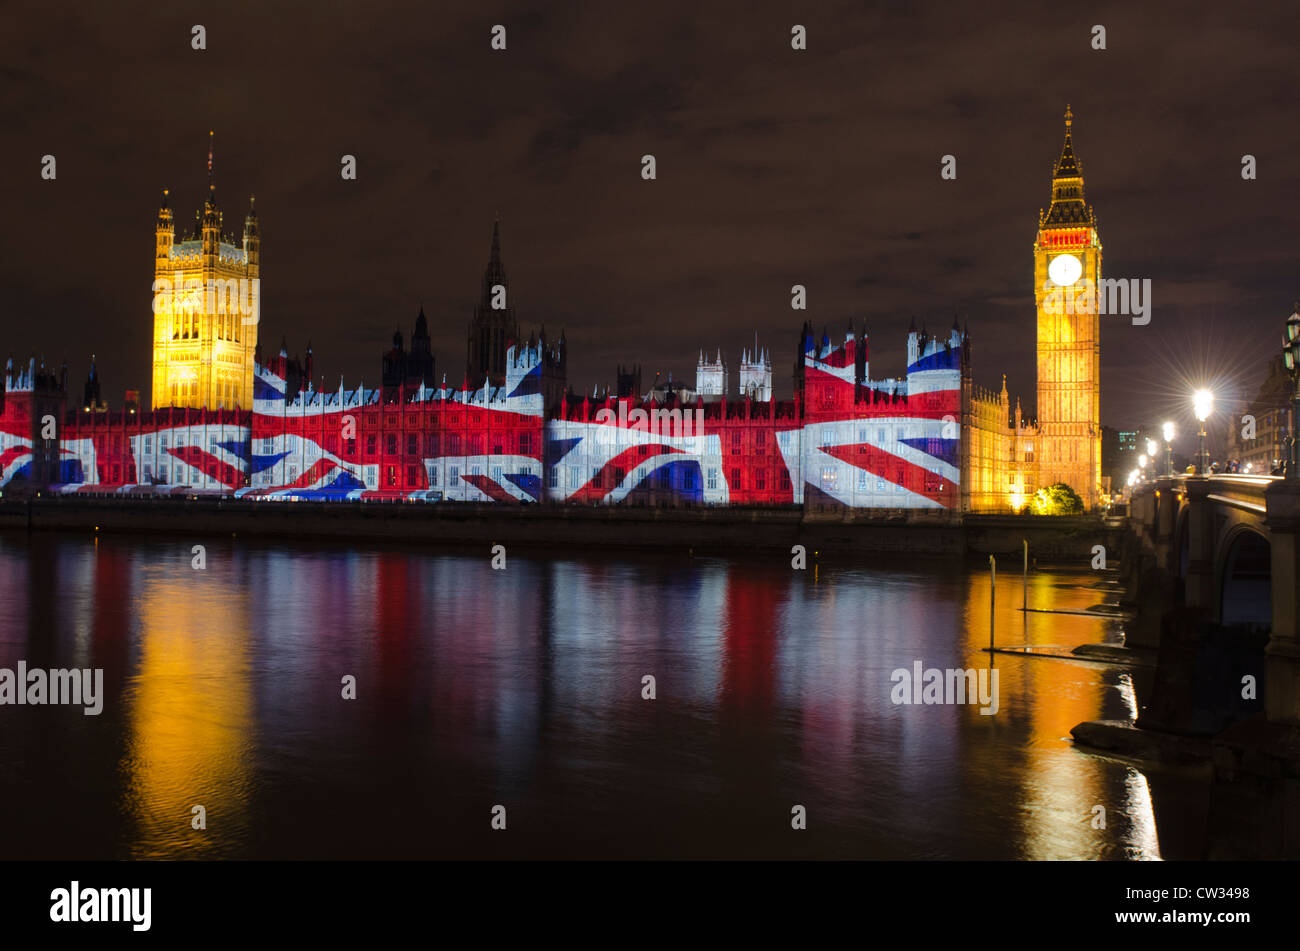 Houses of Parliament at night with London Olympics 2012 Union jack flag projection Uk - Stock Image